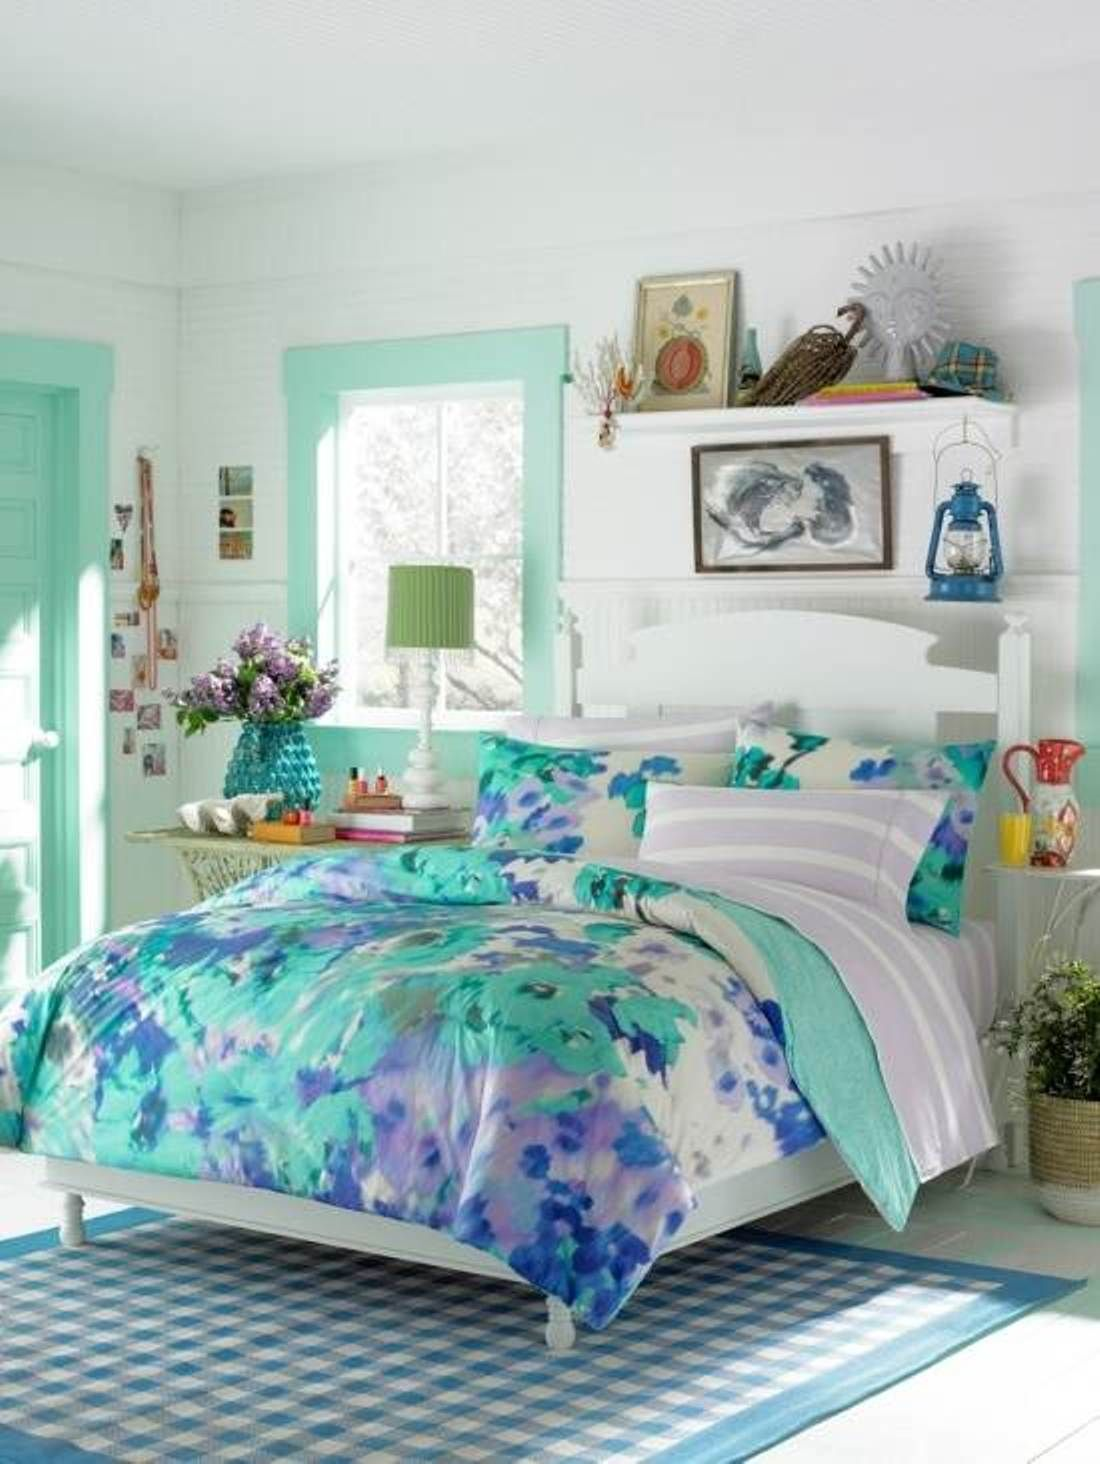 Awesome bedroom ideas for teenage girls - Top Girls Bedroom Ideas Blue With Teenage Girl Bedroom Blue Flower Themes